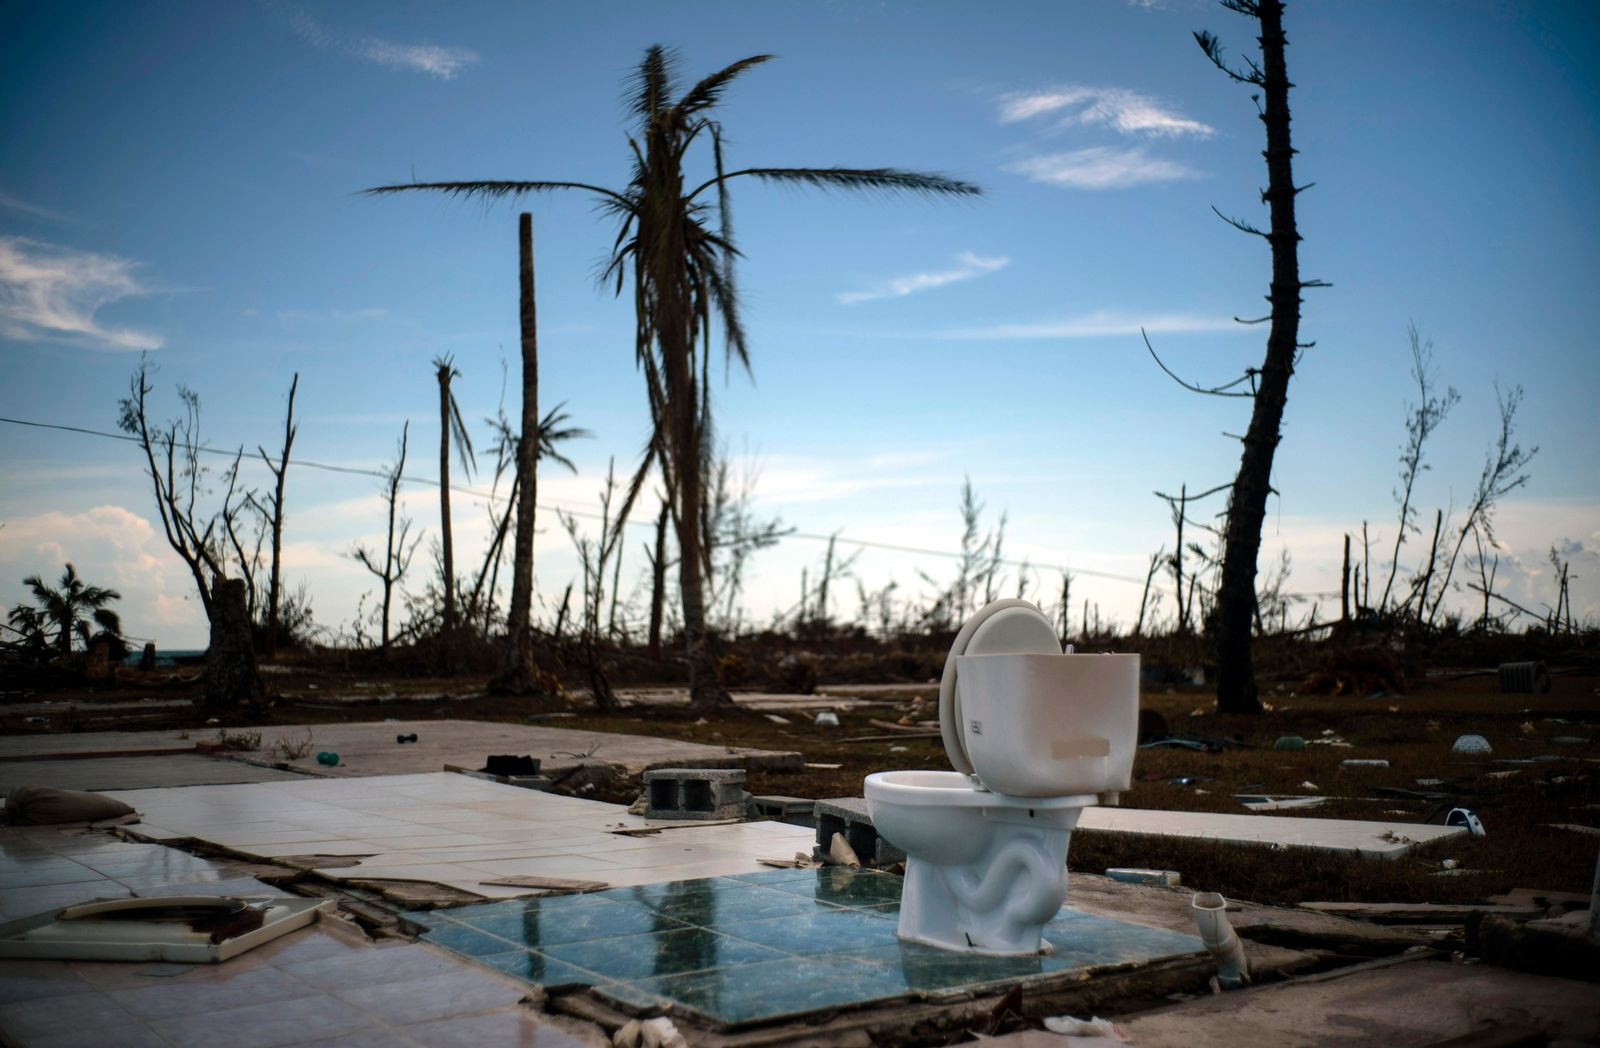 A toilet stands amid the rubble of what was once a home after it was destroyed by Hurricane Dorian one week ago in Pelican Point, Grand Bahama, Bahamas, Sunday, Sept. 8, 2019. (AP Photo/Ramon Espinosa)